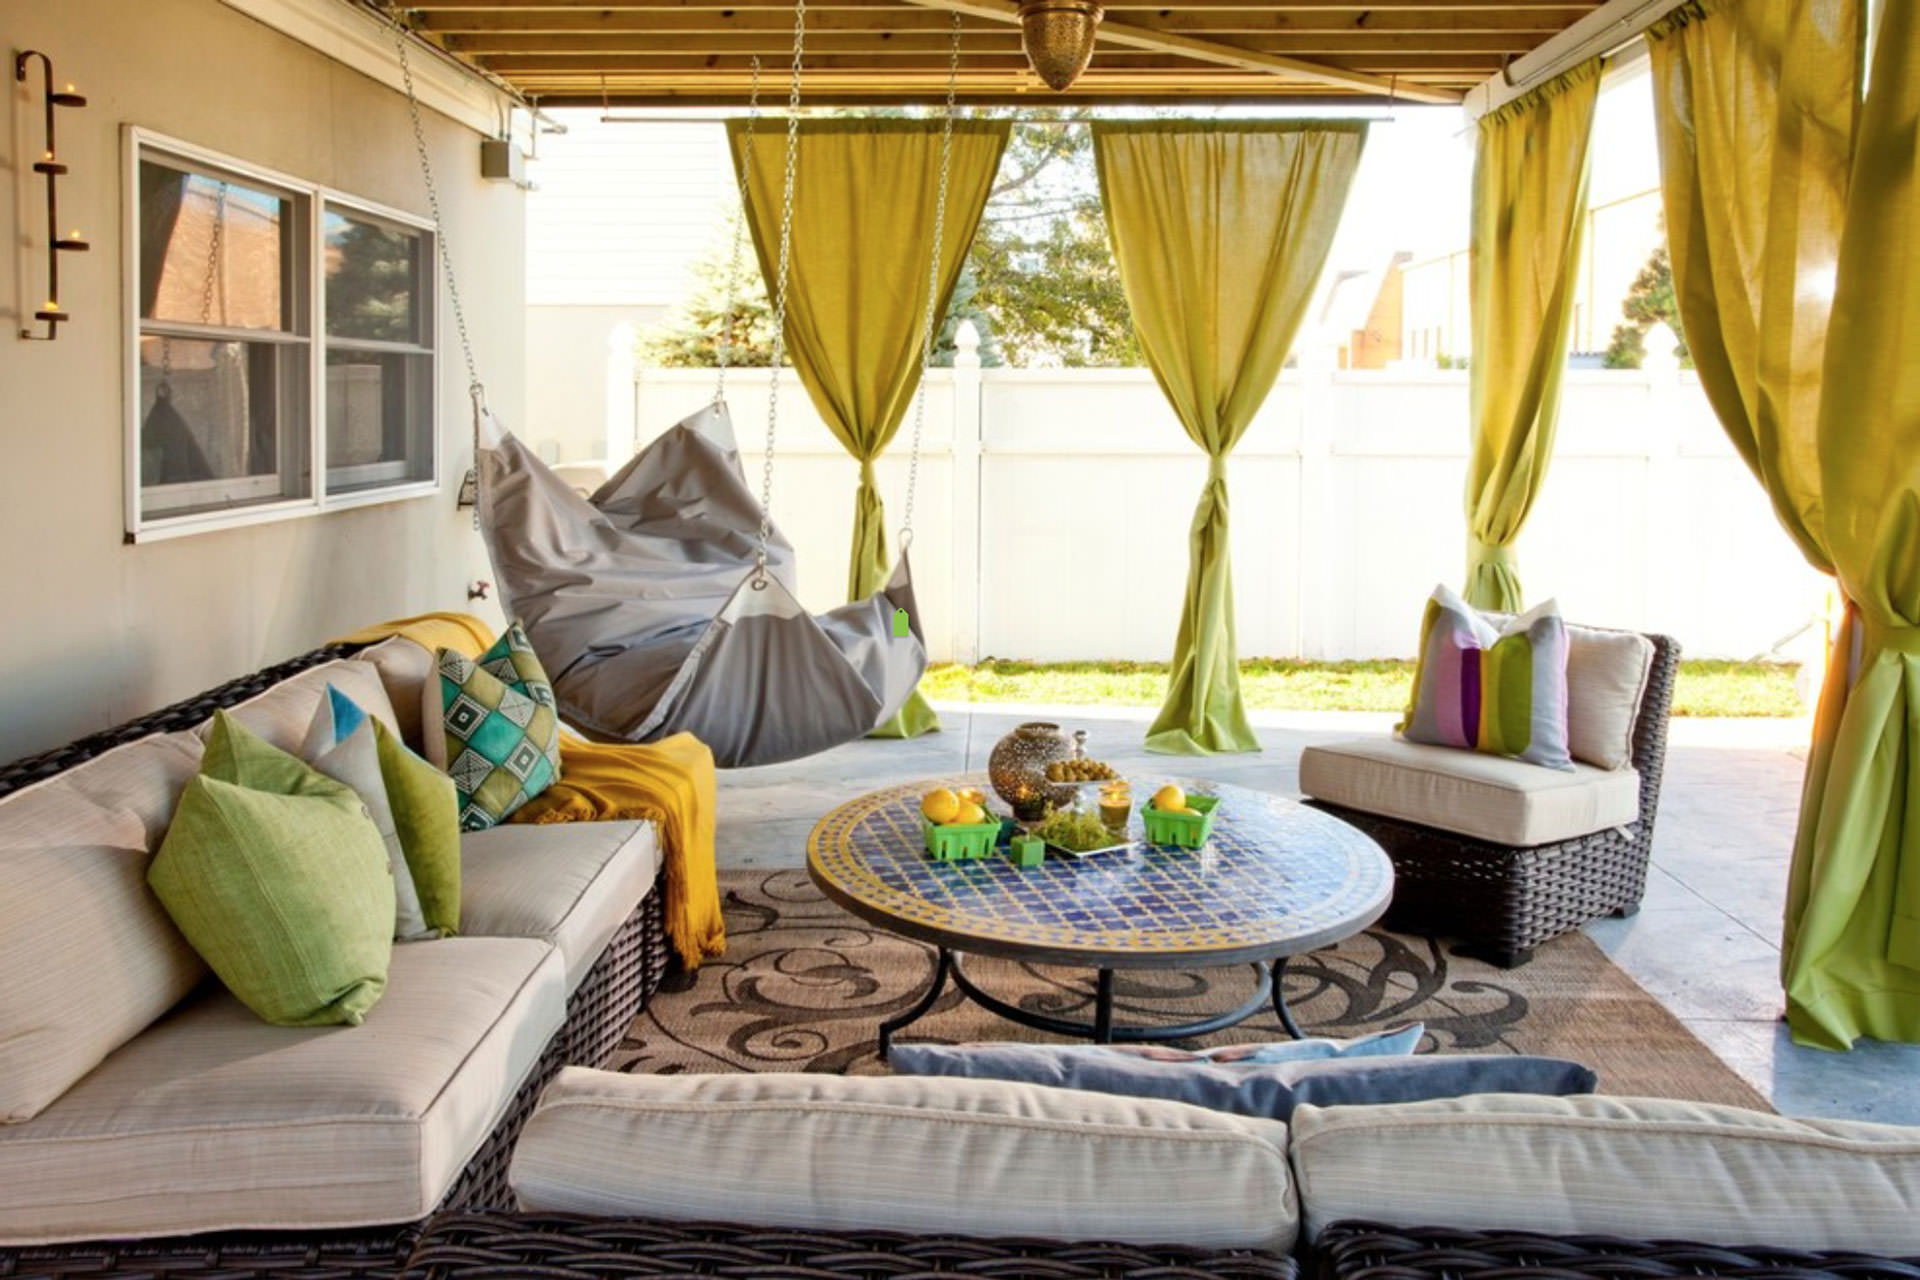 transform your space with outdoor fabrics